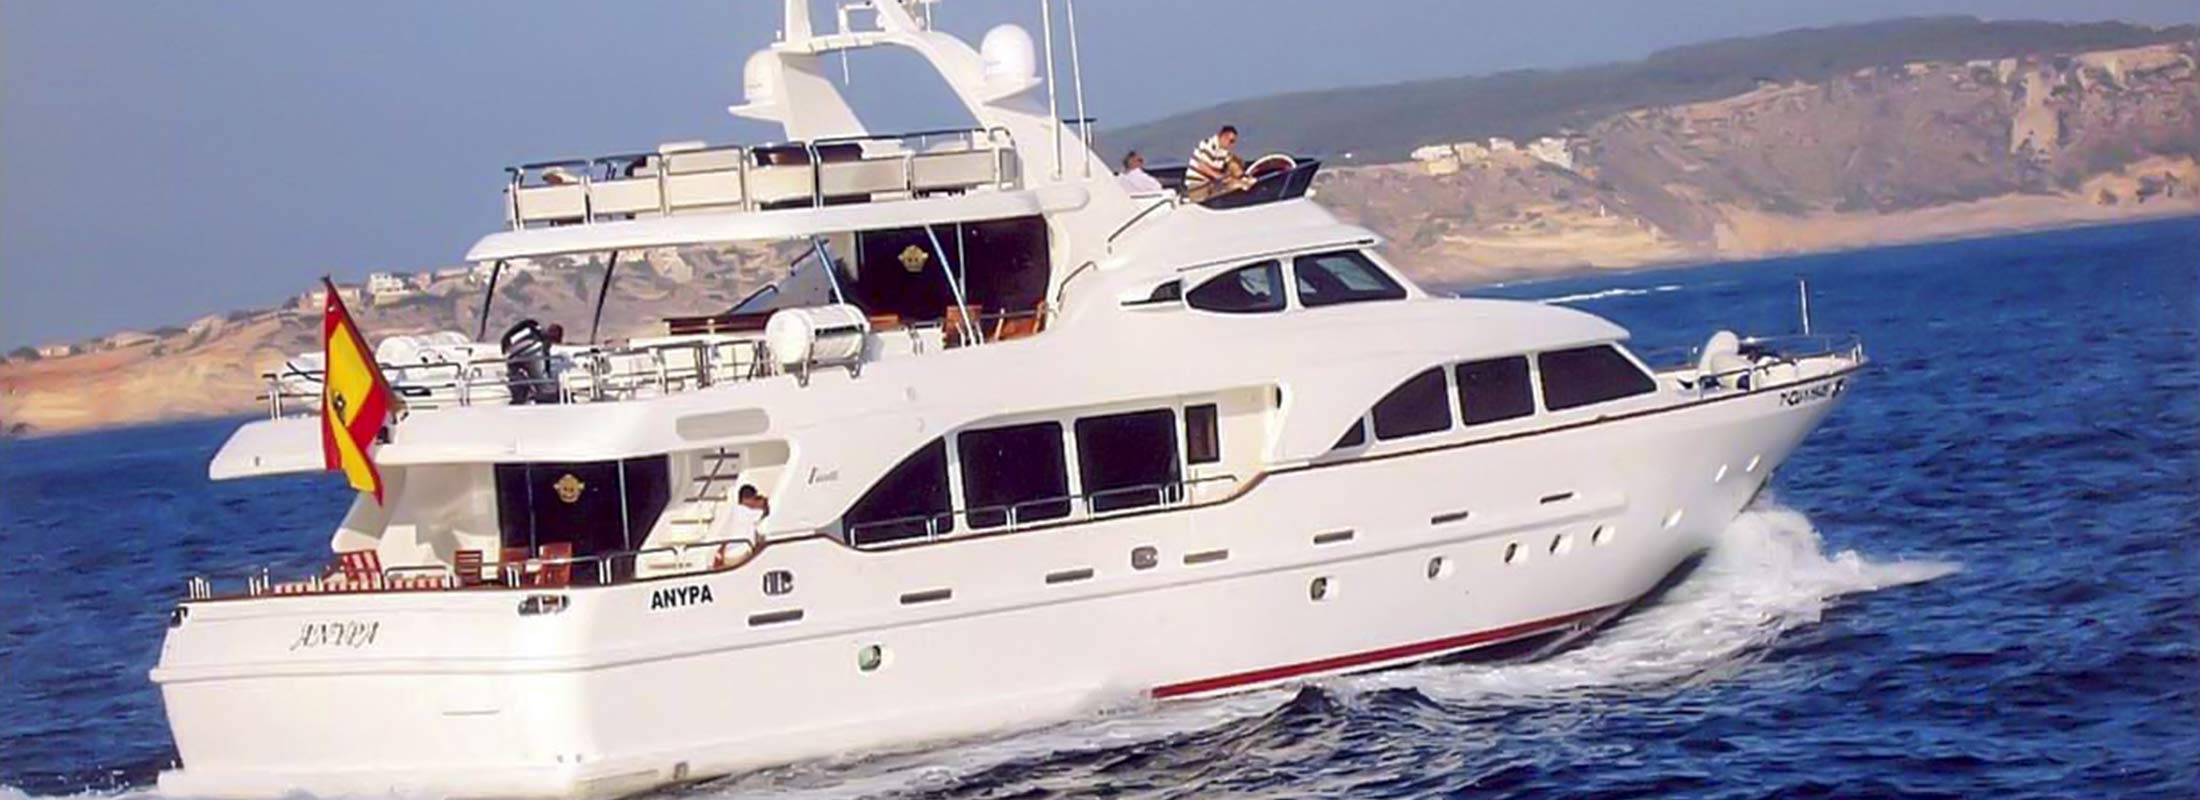 Anypa Motor Yacht for Charter Mediterranean slider 1